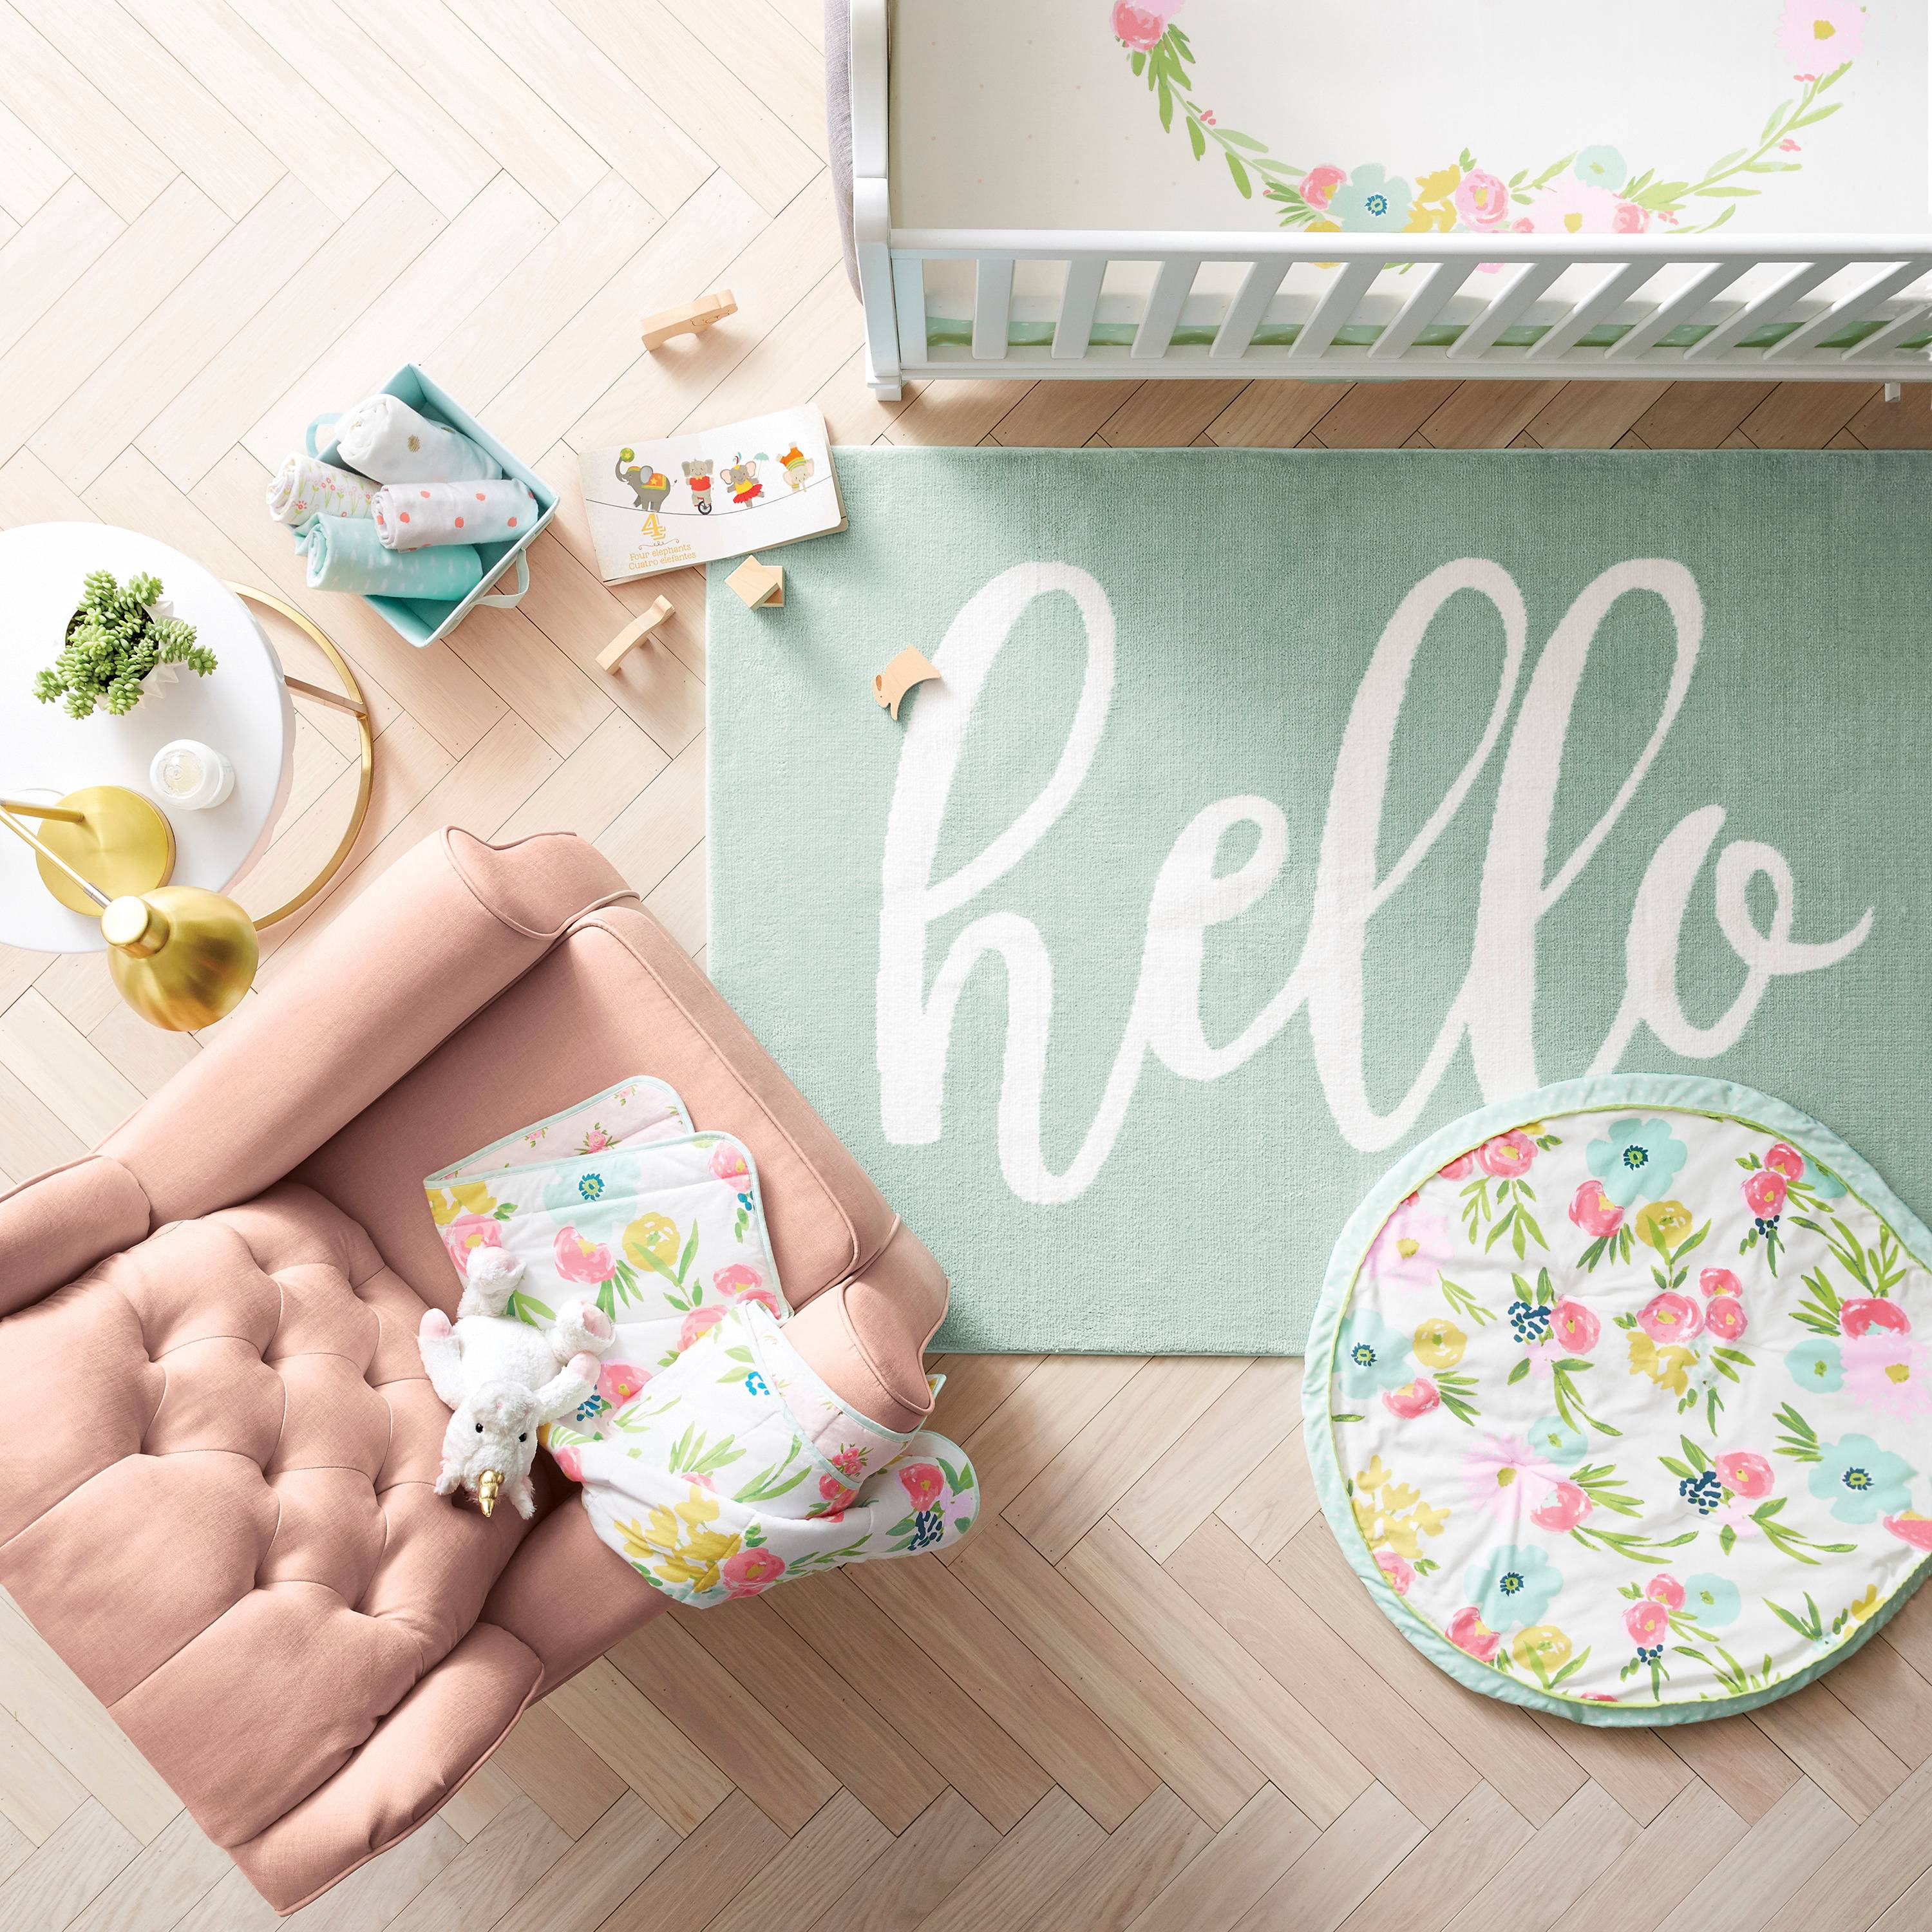 Chicago lifestyle blogger Happily Inspired shares Target's new nursery collection: cloud island is a crowd pleaser. Floral fields to desert dreams.